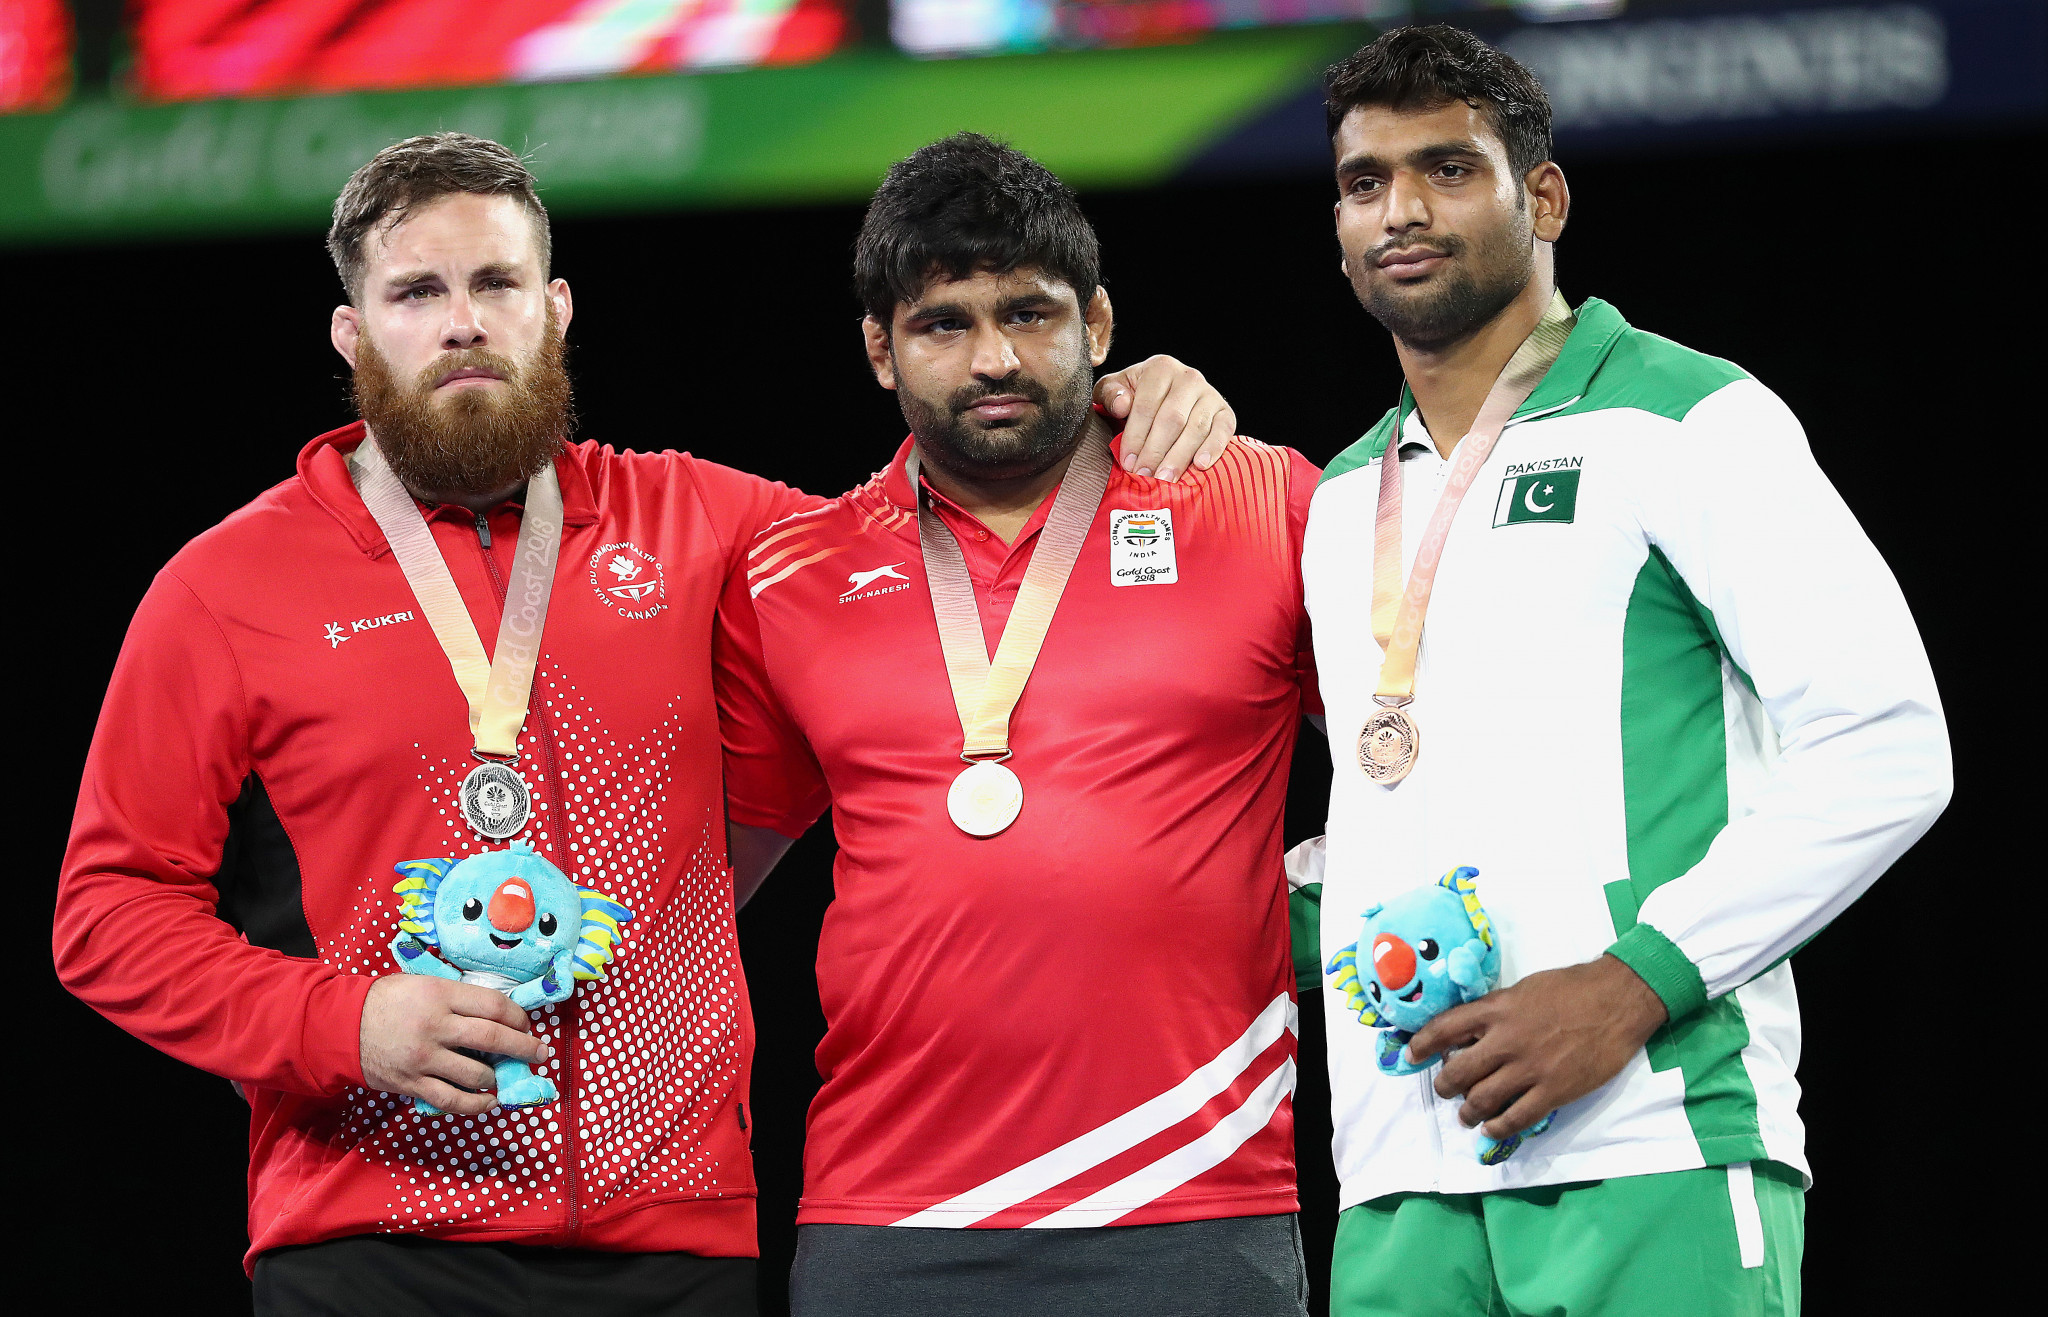 Sumit Malik won the Commonwealth Games gold medal in the 125kg category at Gold Coast 2018 ©Getty Images